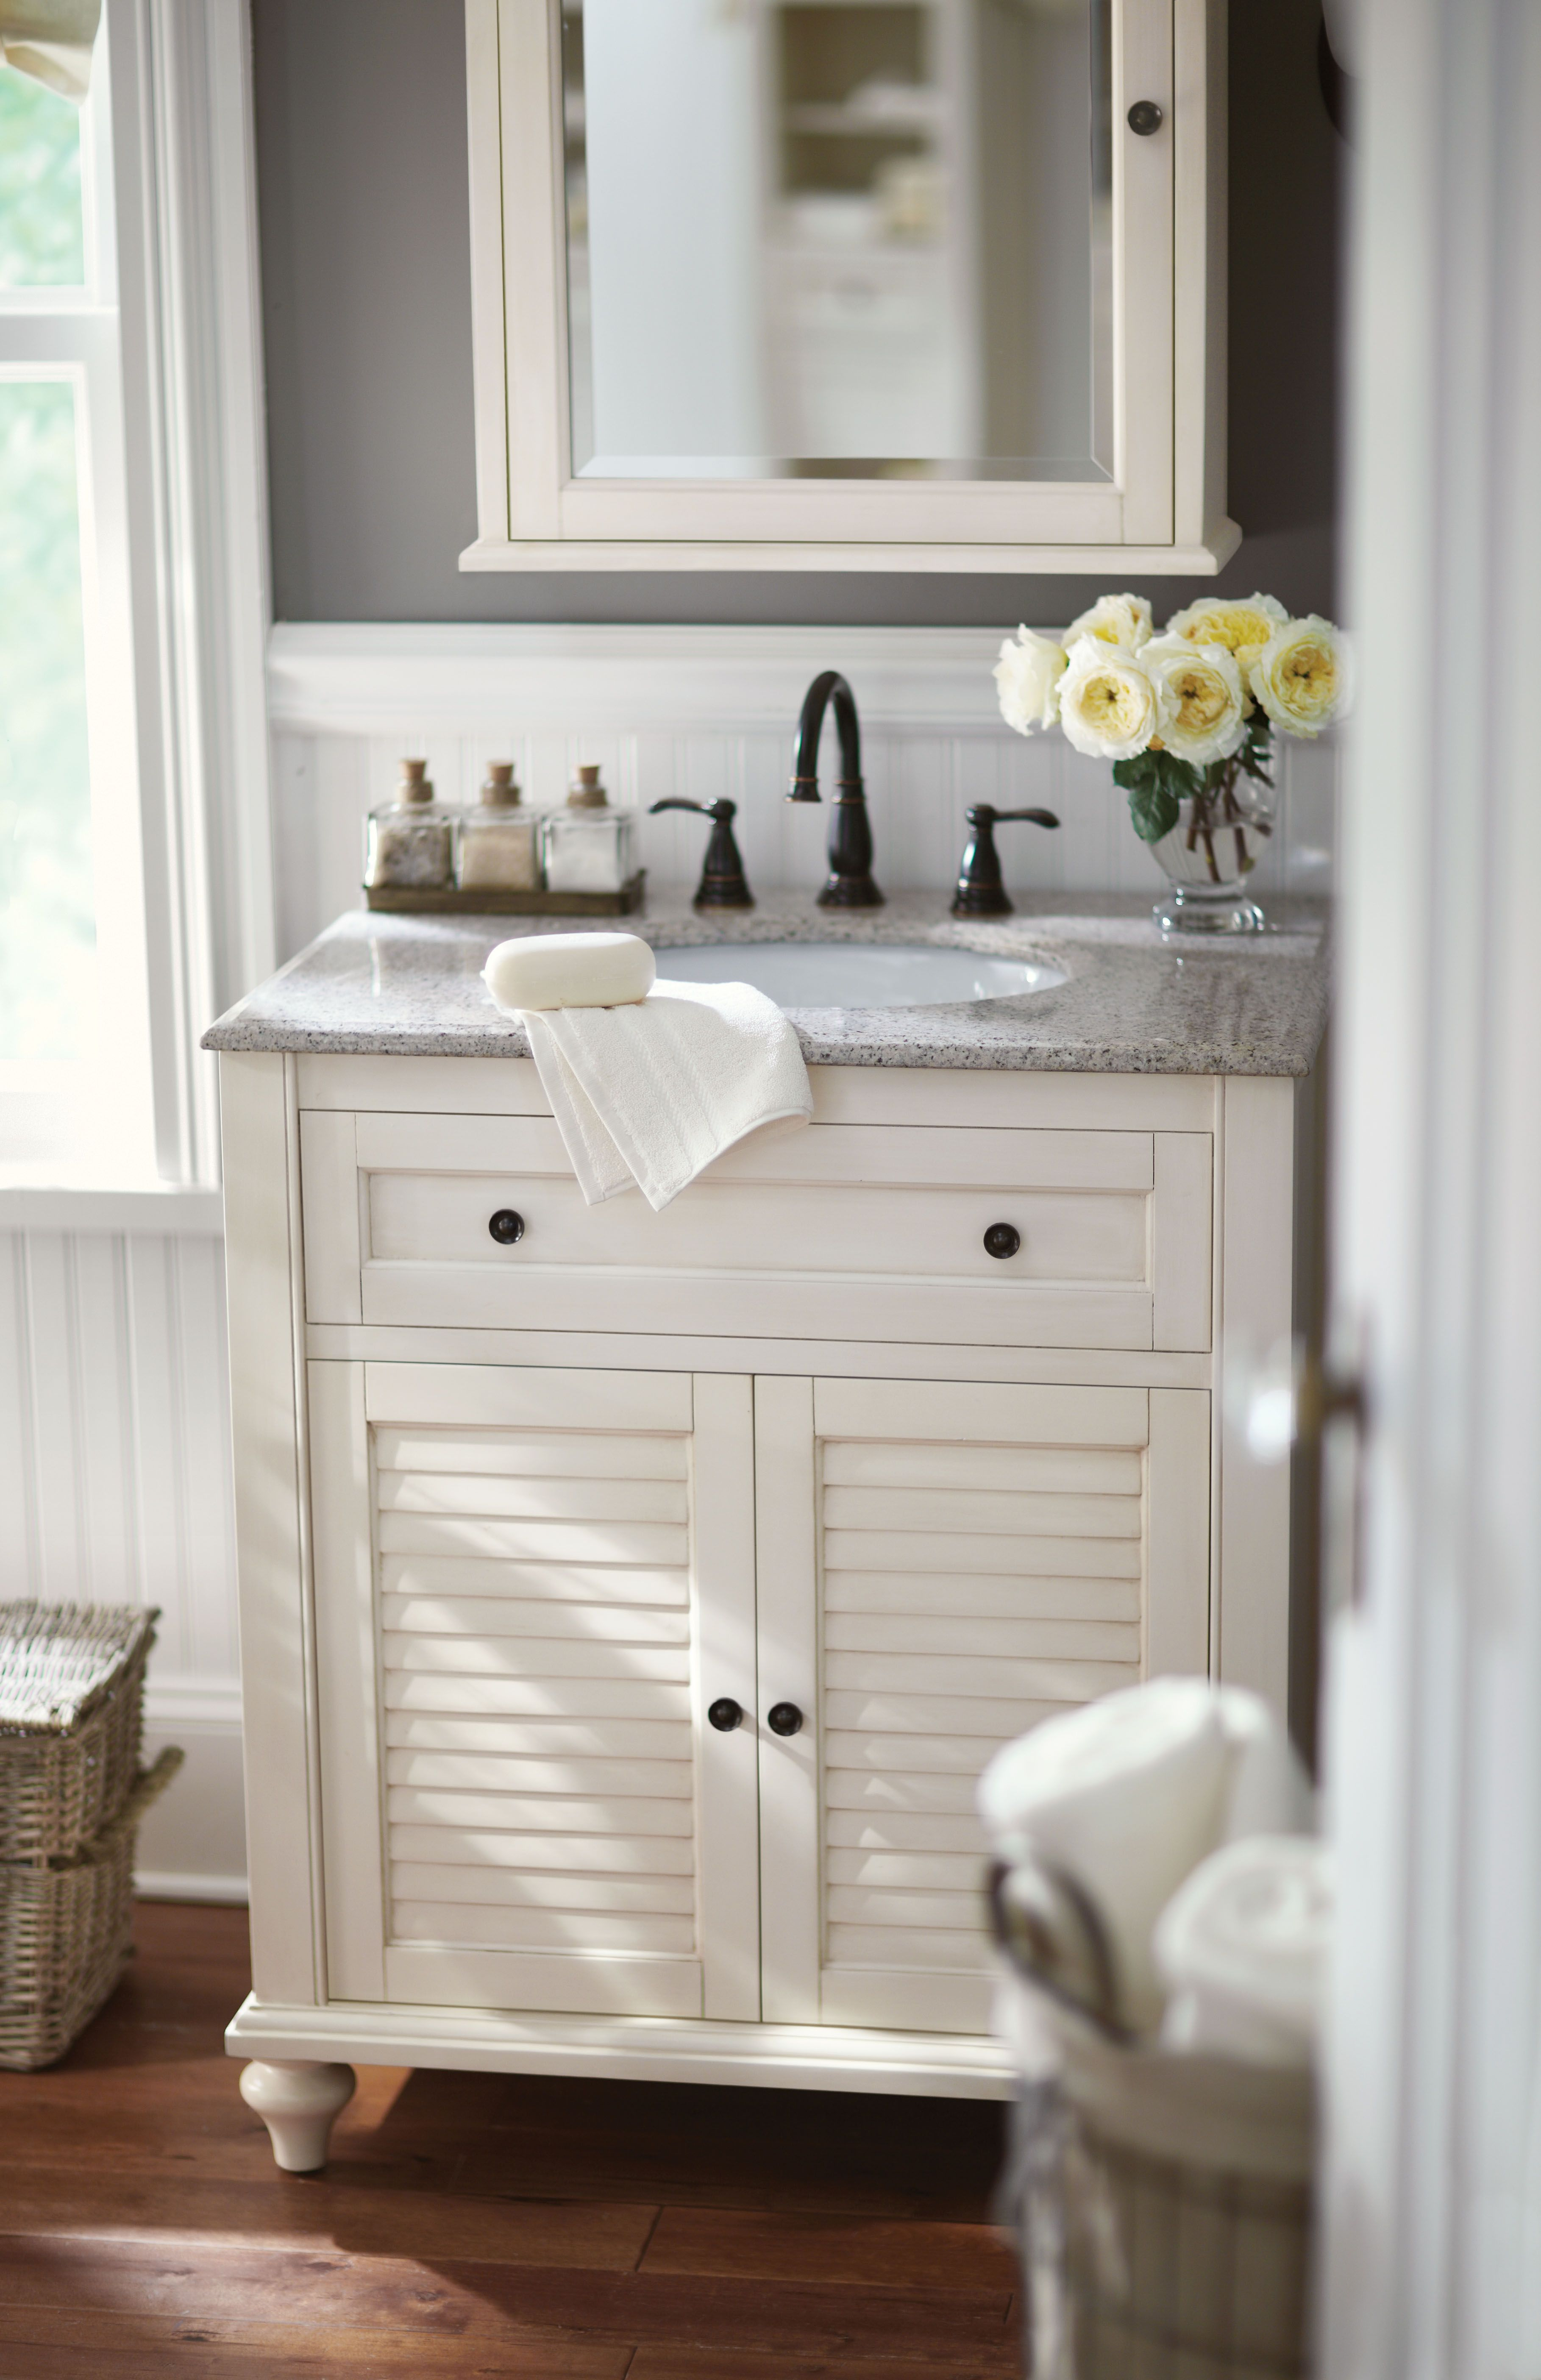 Small bath? No problem. A single vanity like this one is